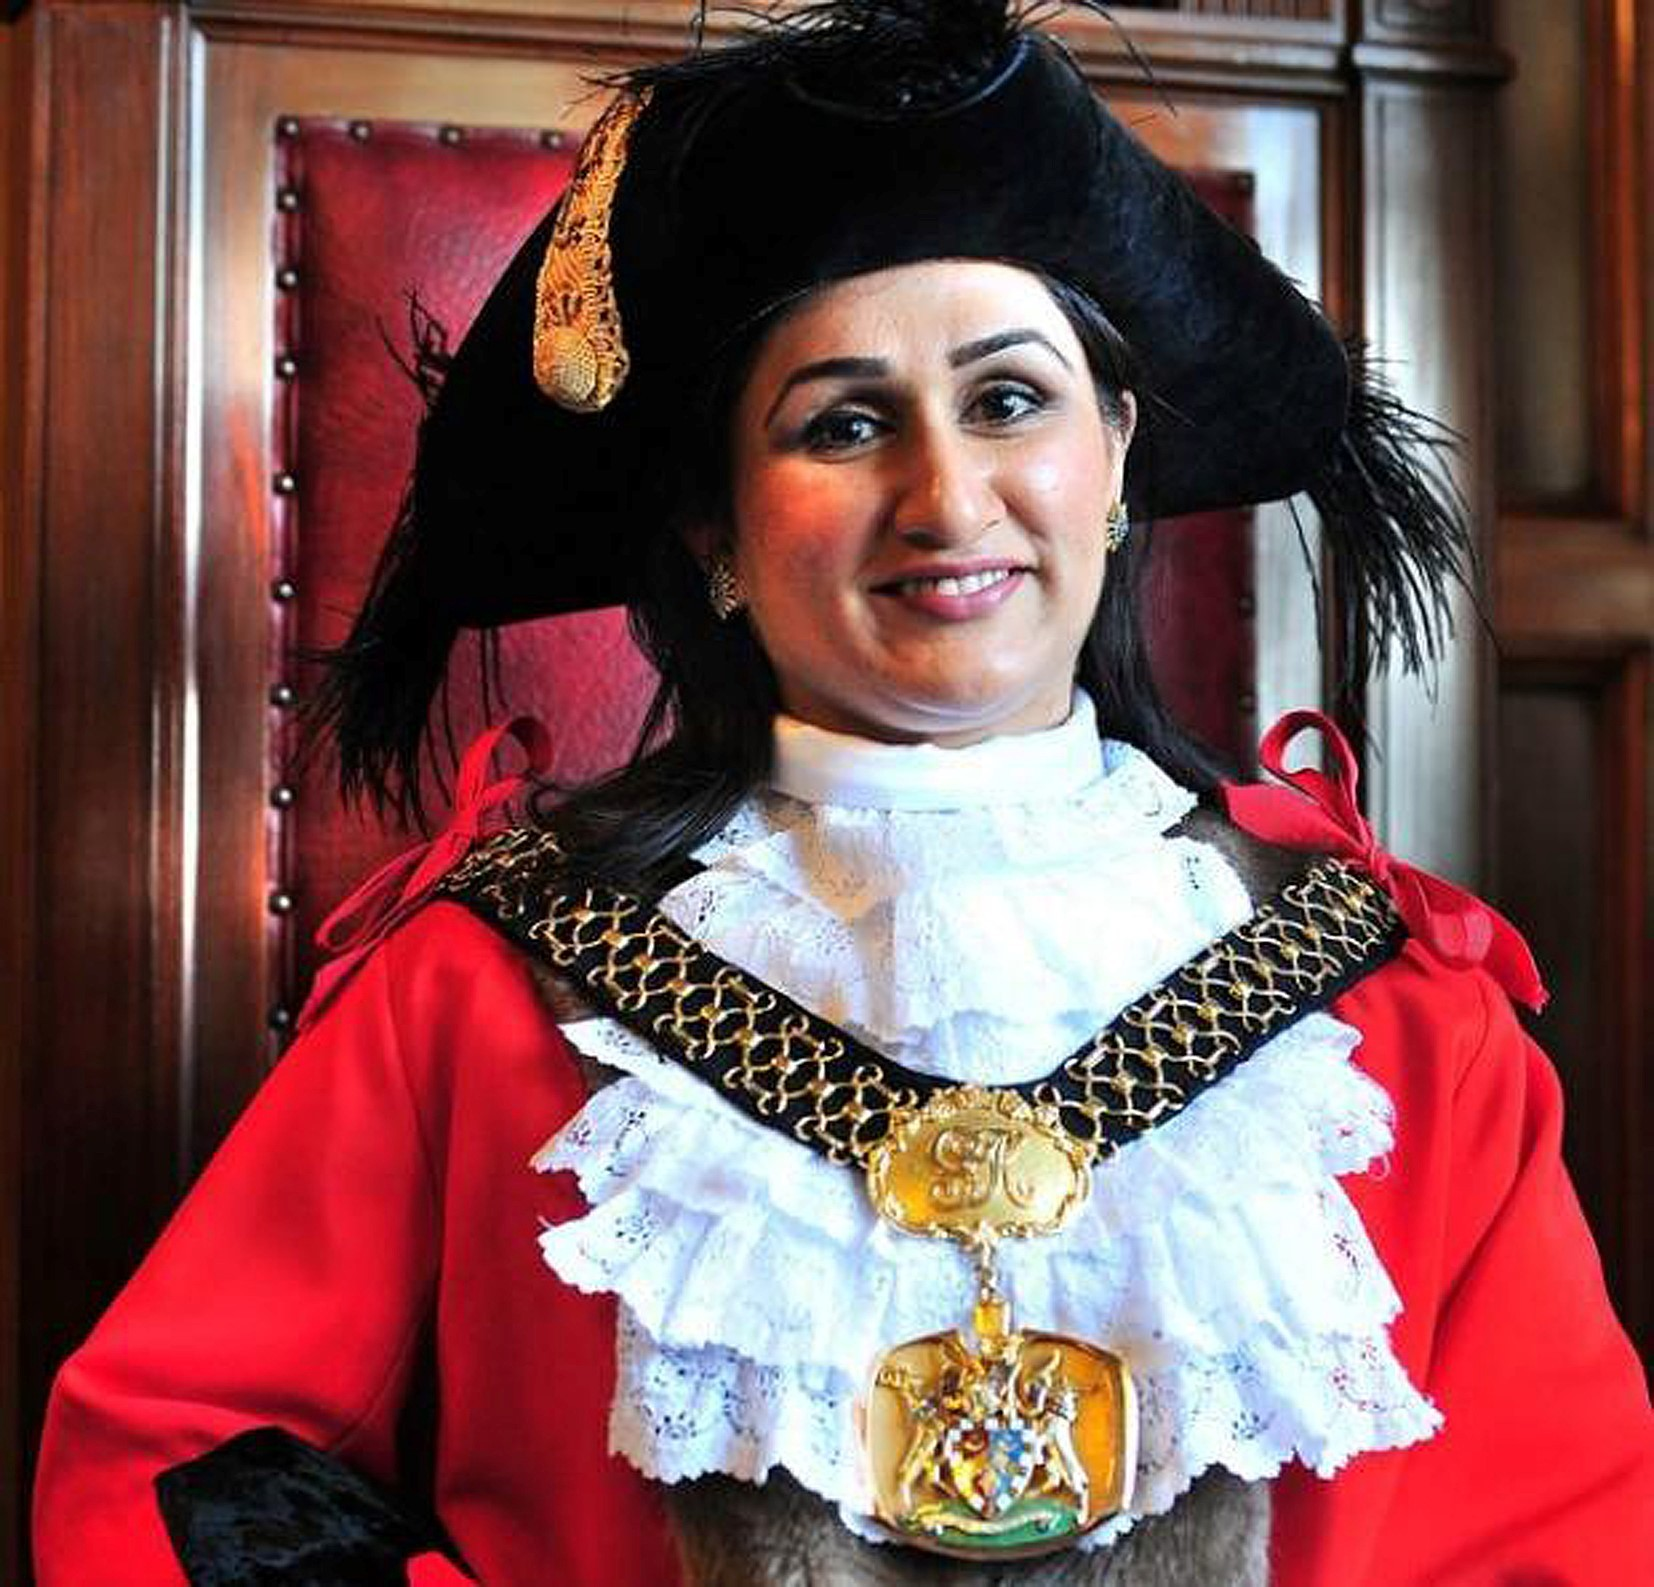 Former Lord Mayor of Bradford Naveeda Ikram has stepped down from Bradford Council